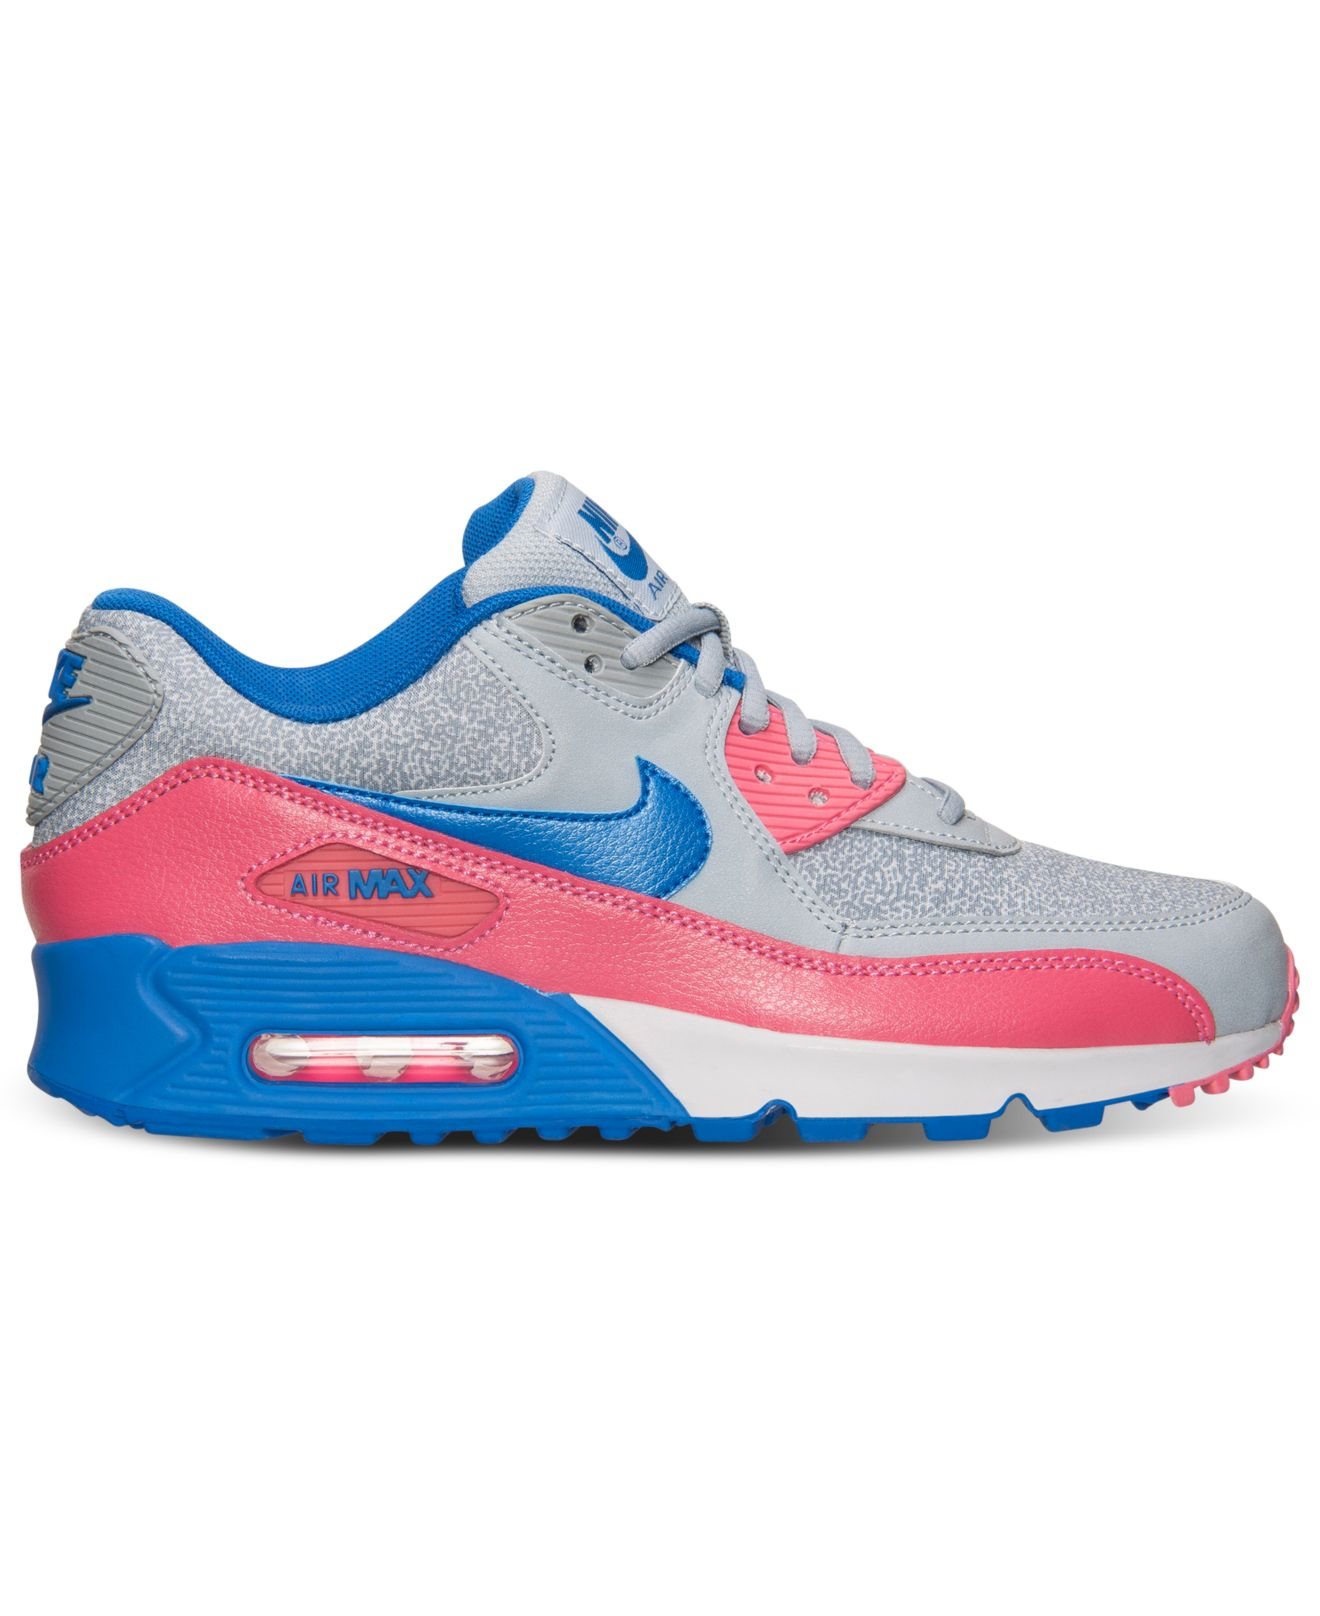 low priced b177d d7f4f Nike Women S Air Max 90 Running Sneakers From Finish Line .